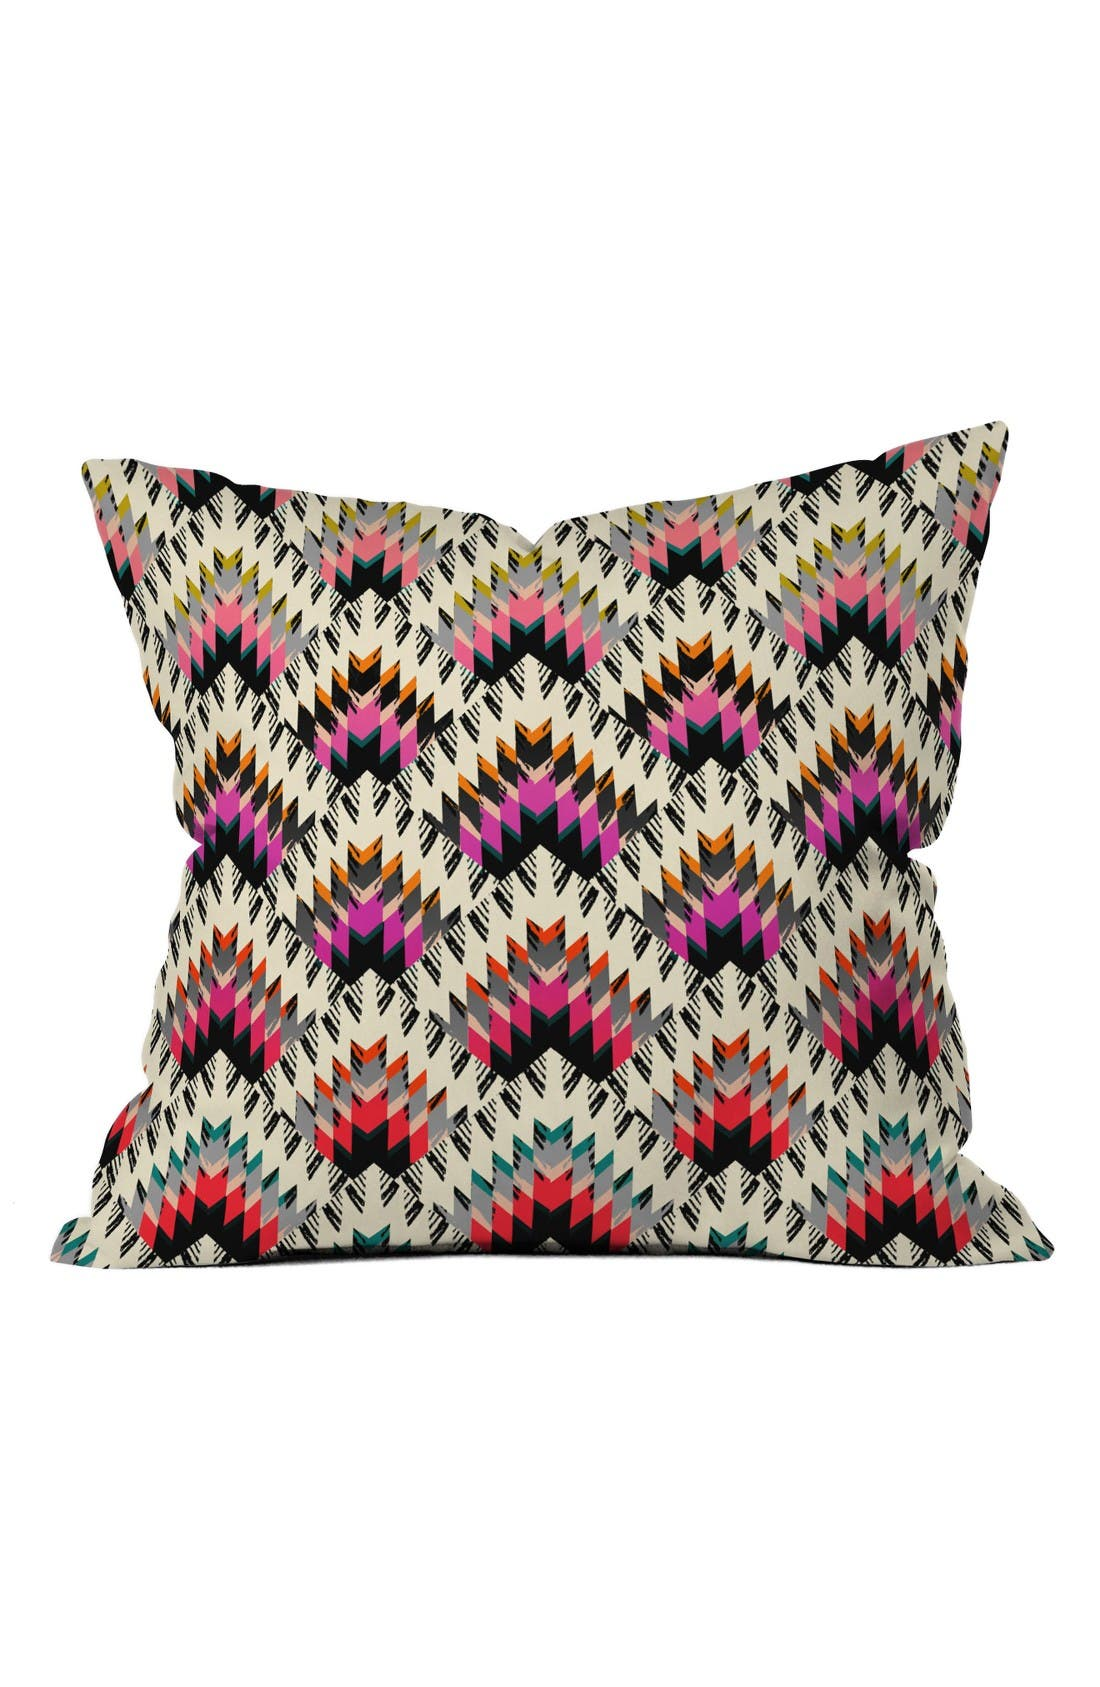 State Peaks Pillow,                         Main,                         color, Pink/ Multi